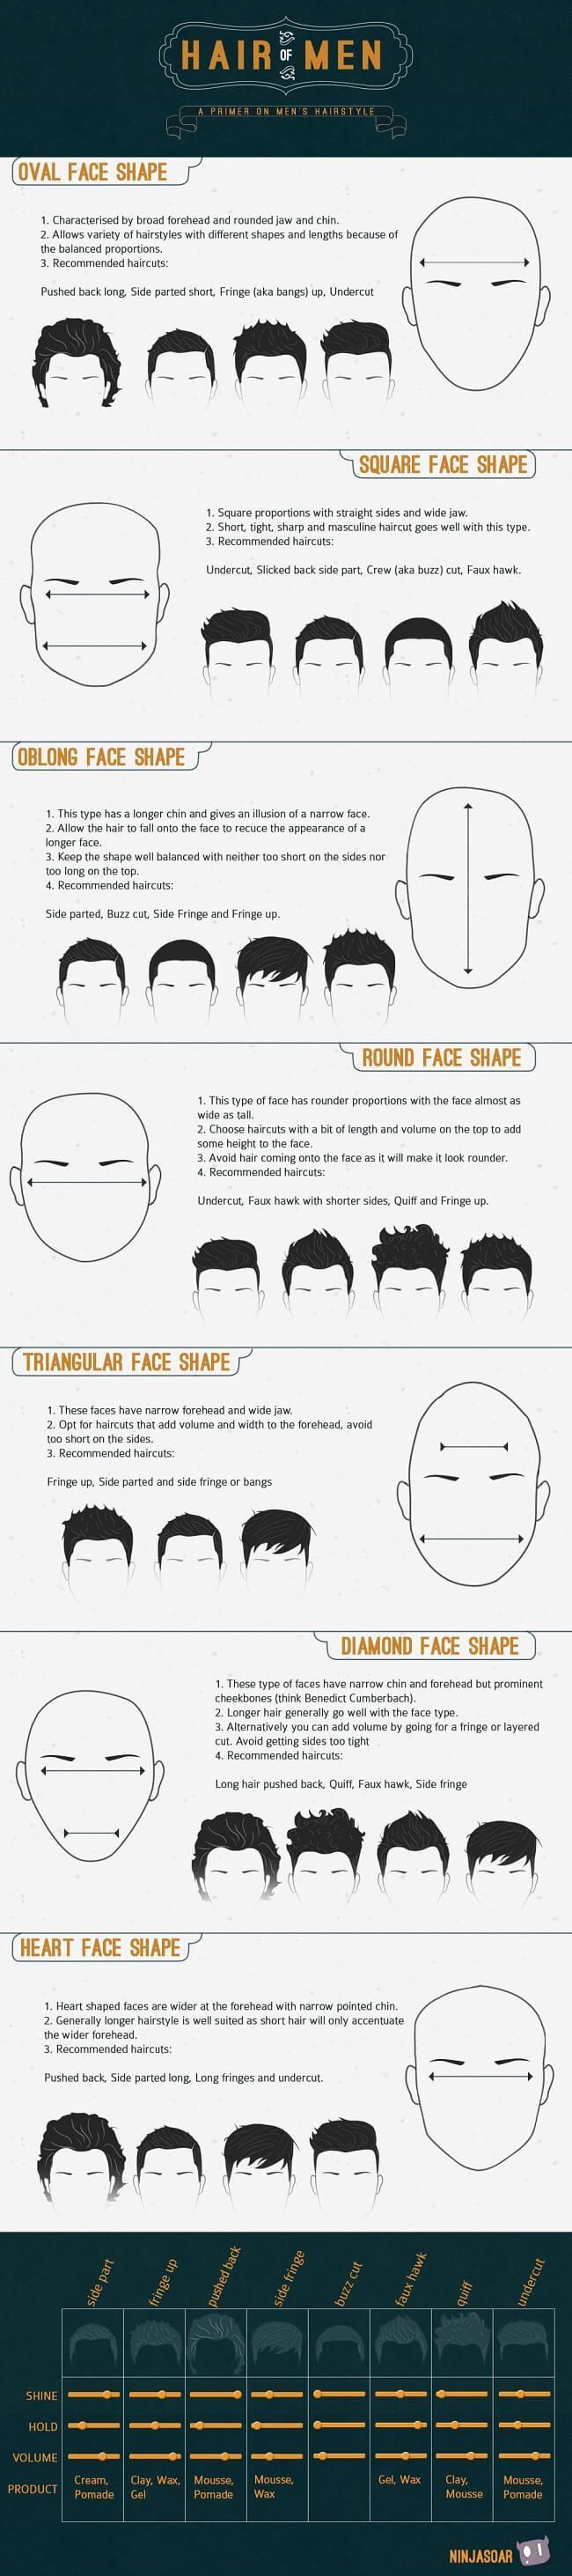 TwitterFacebookWhatsAppGoogle+BufferLinkedIn Published by: Ninjasoar Original source: here TIPS FOR:men's care, men's grooming, men's look, men's style, hairstyle Related Tips... Thin Hair Vs Thick Hair How Protein Softens Hair Gents Pinpoint your Next Hairstyle #ad